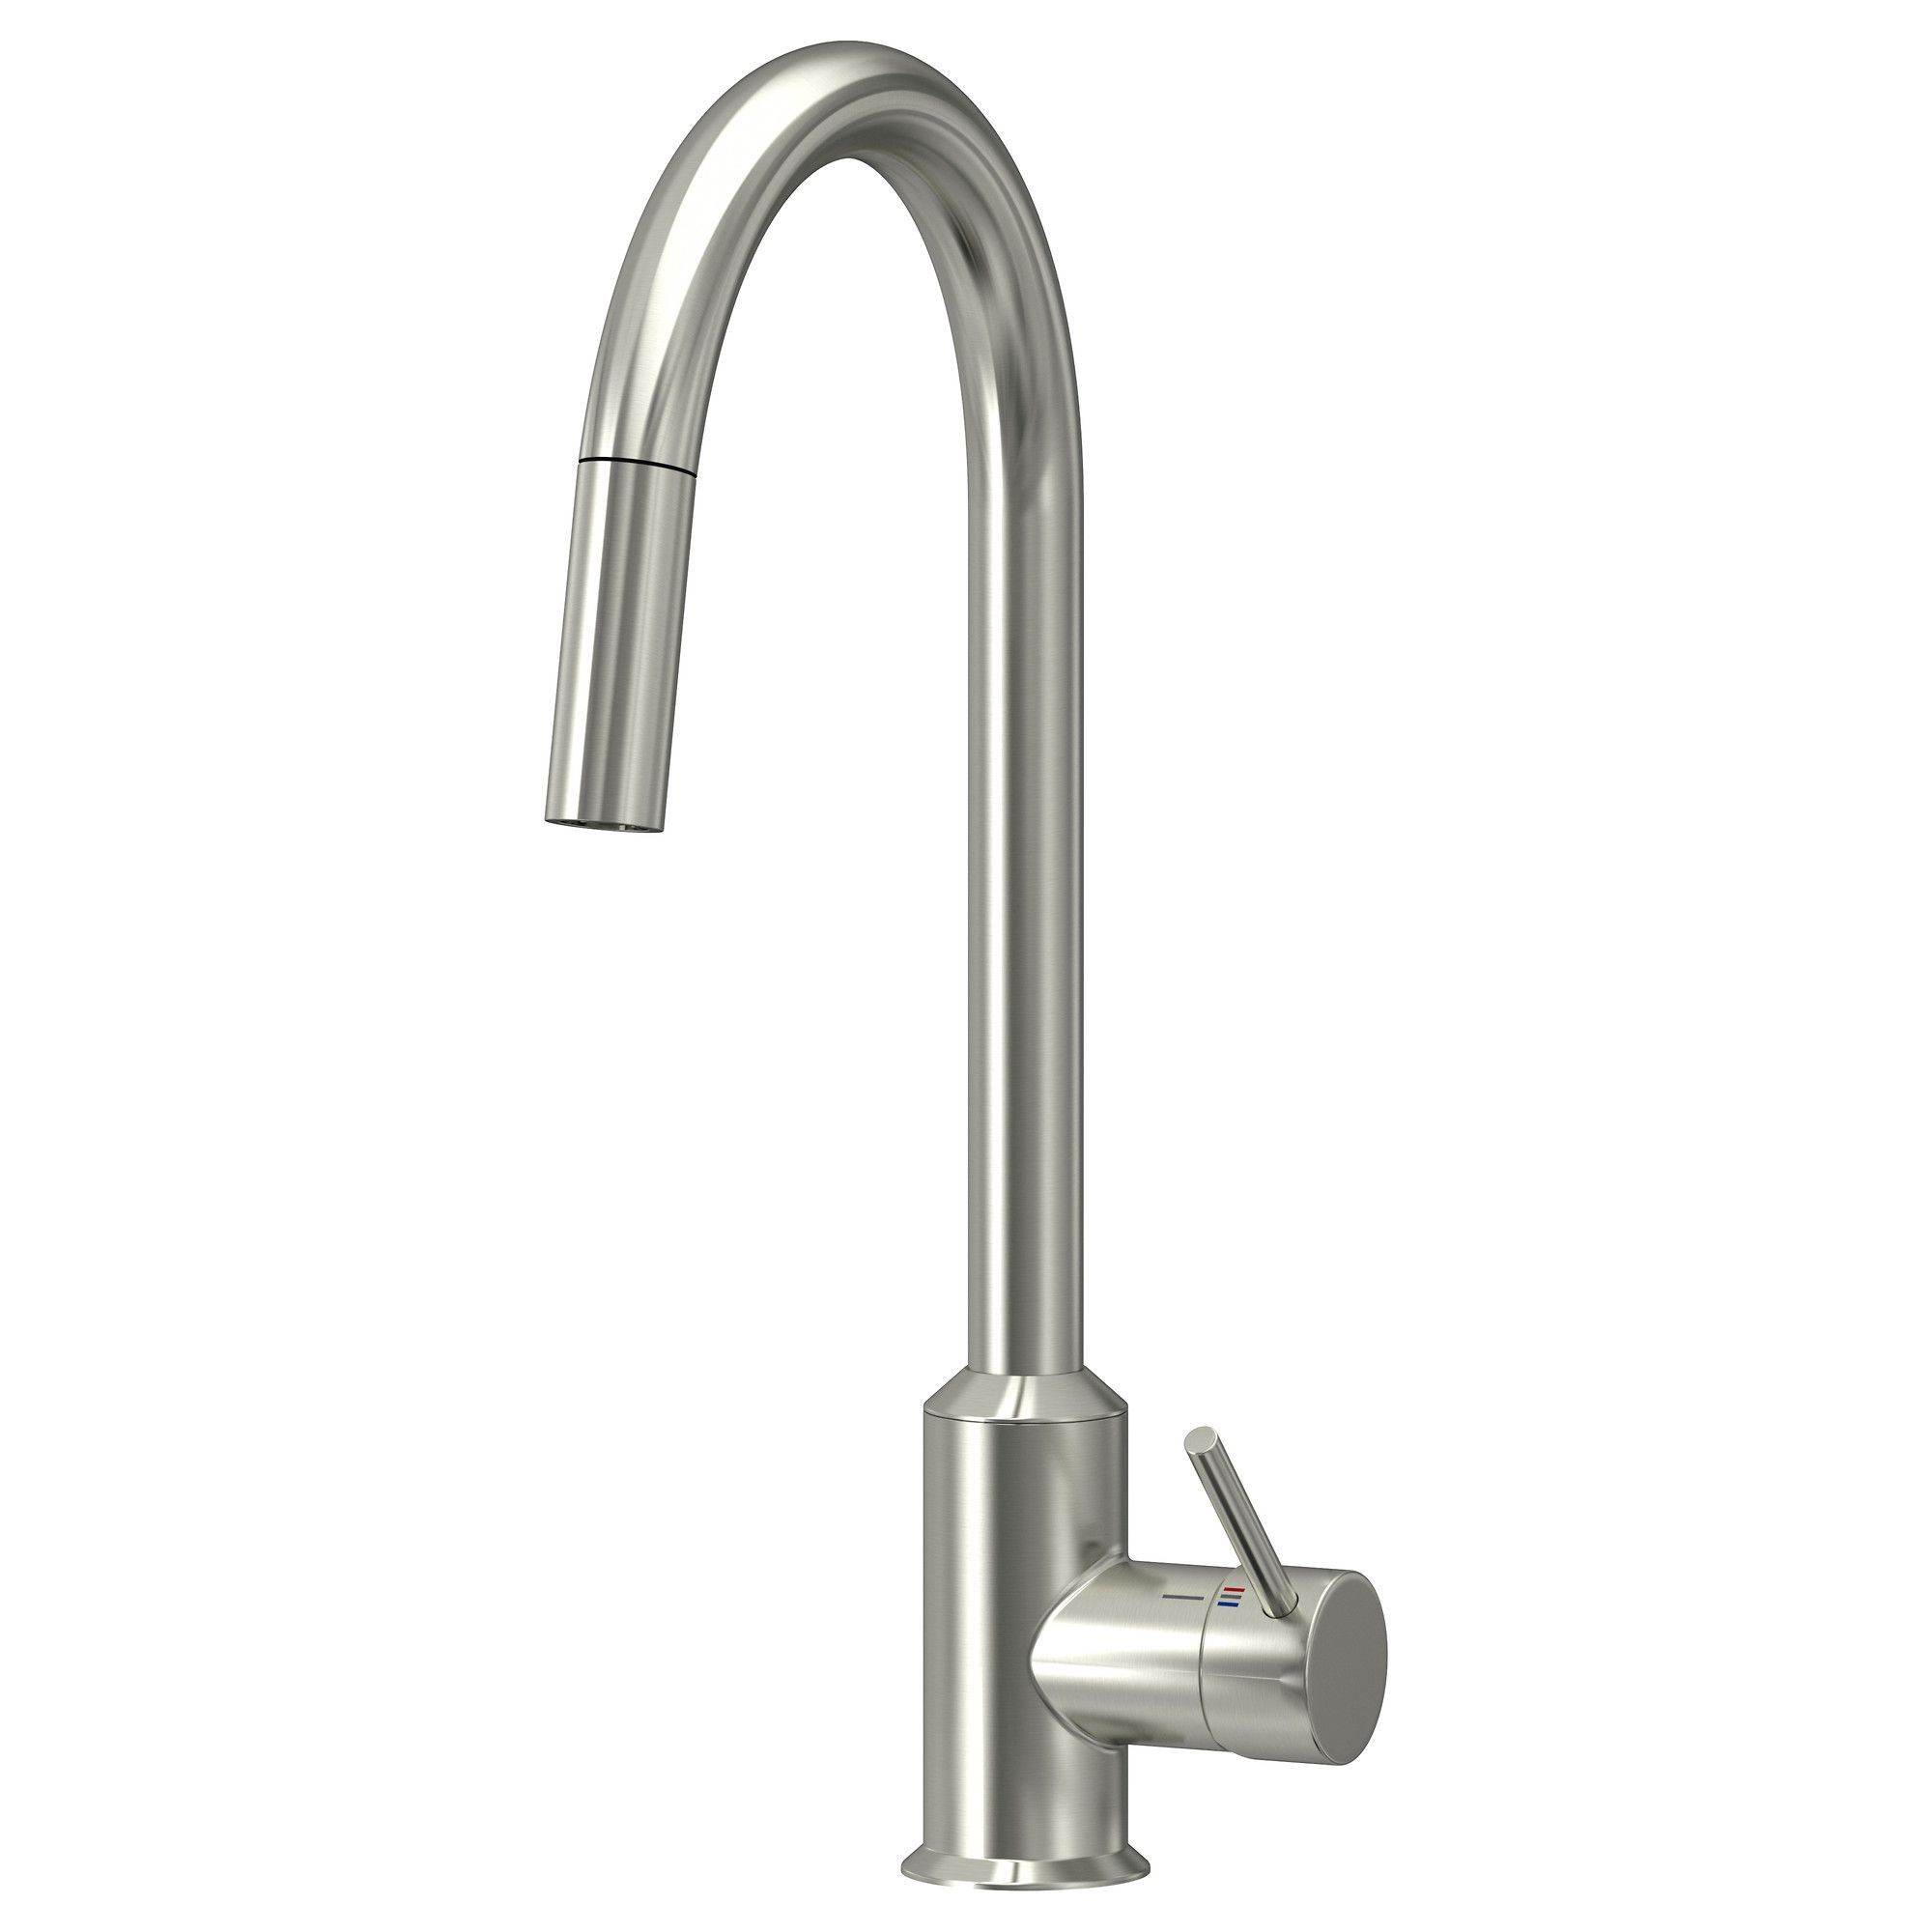 best handle with for pot pin faucets mounted kitchen design faucet outstanding filler updown steel wall elegant installation stainless modern